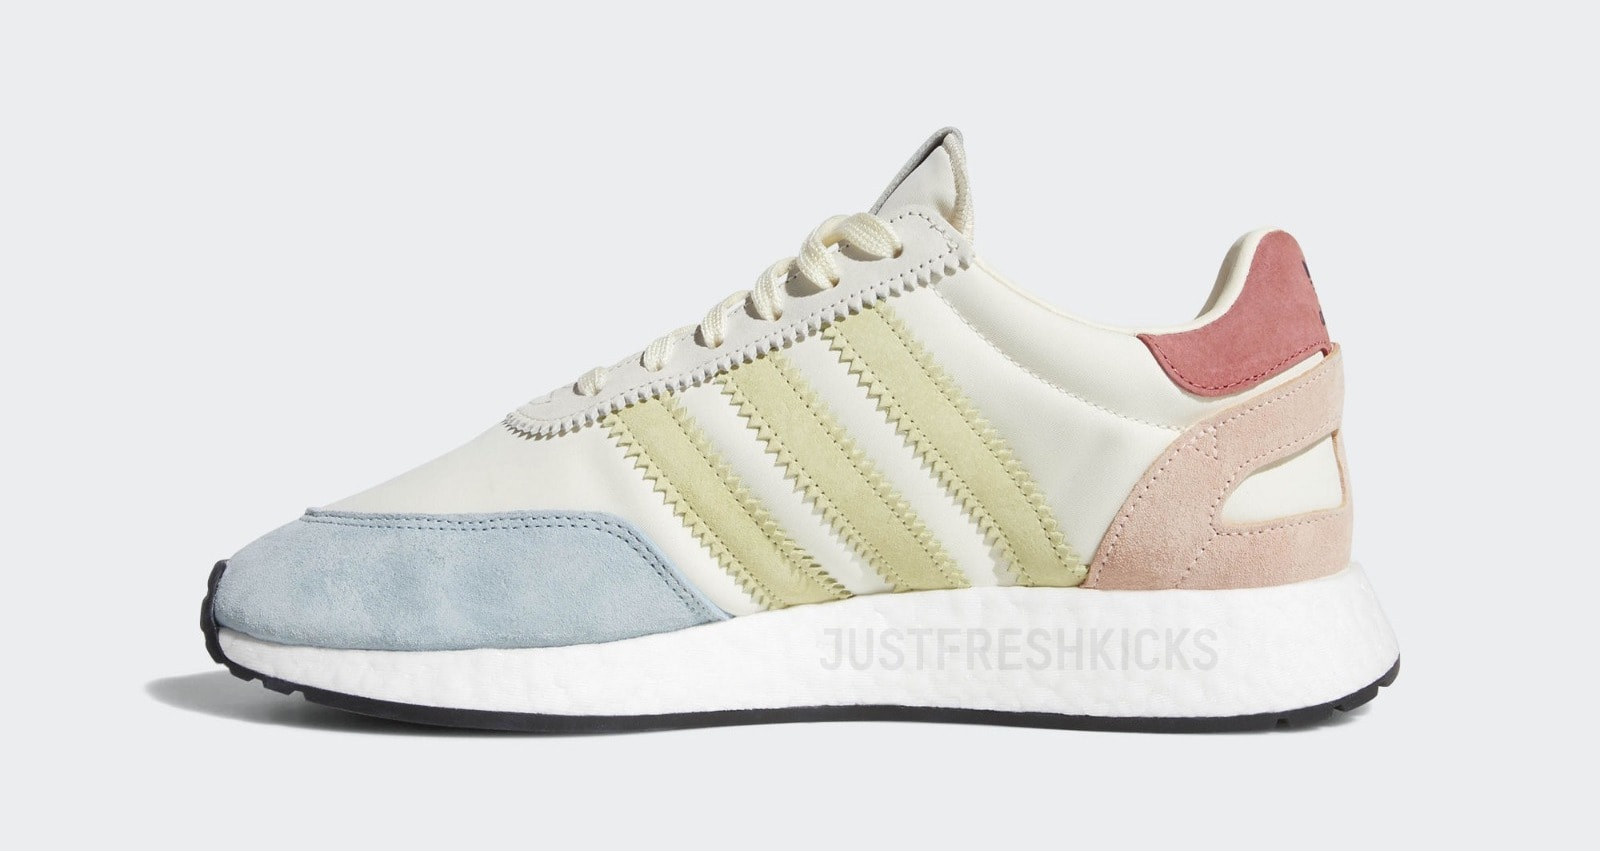 Adidas Official Shoes